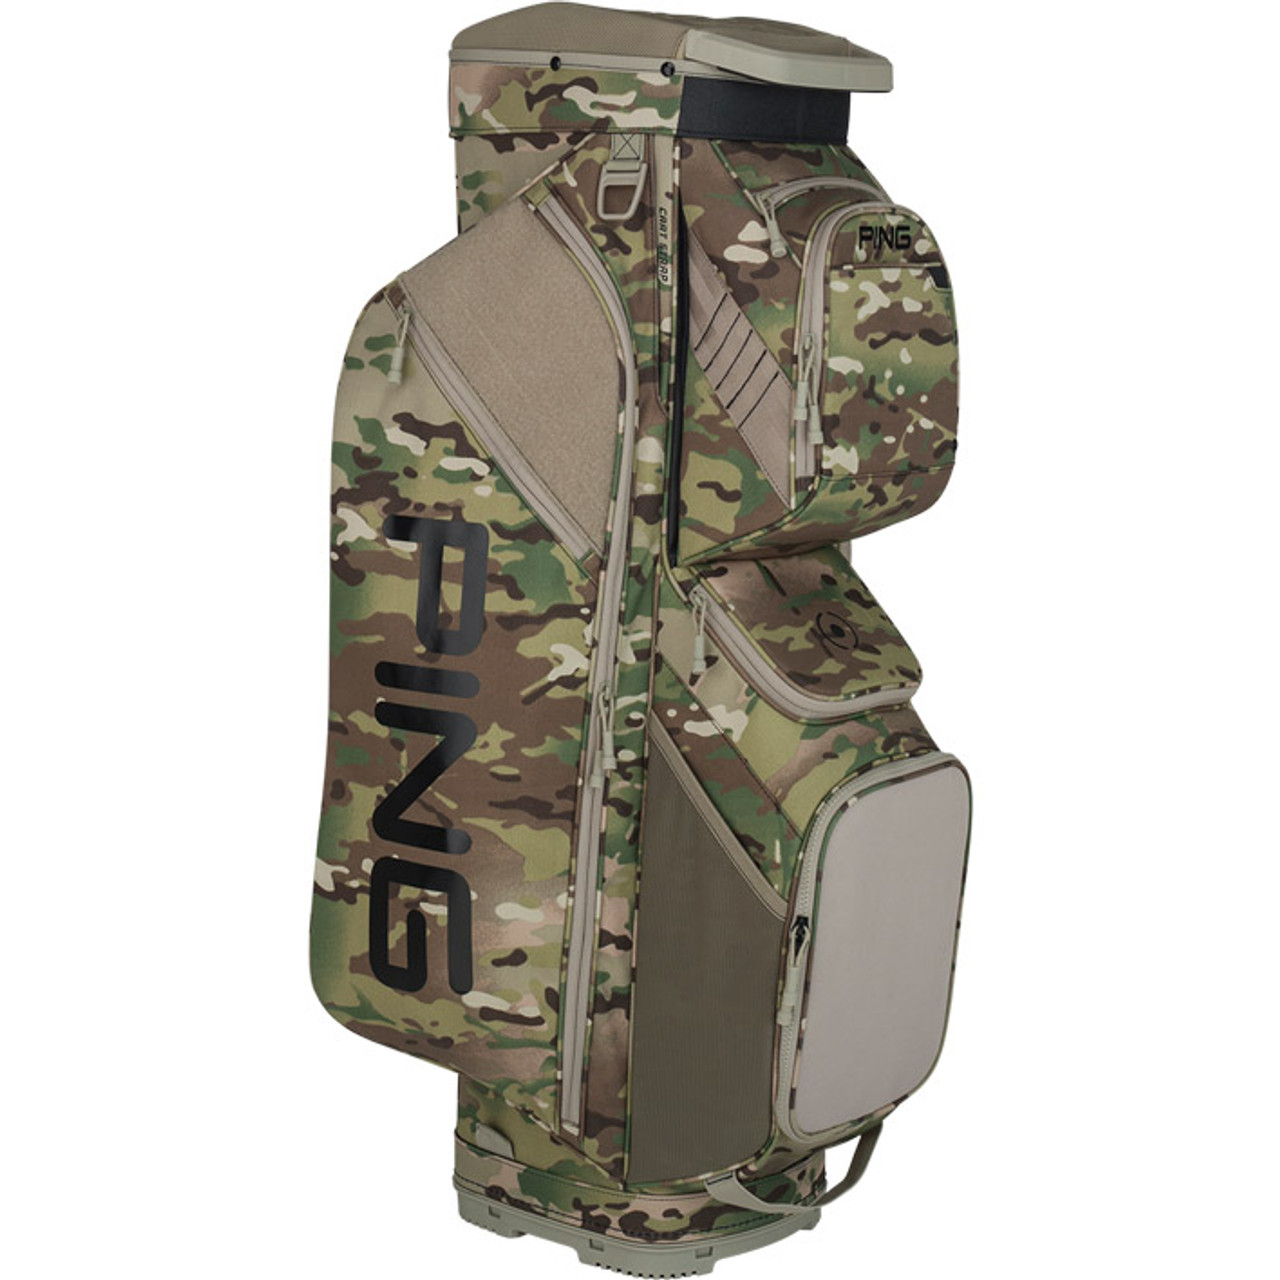 Ping Traverse Personalized Cart Bag - Multicam ($20.00)